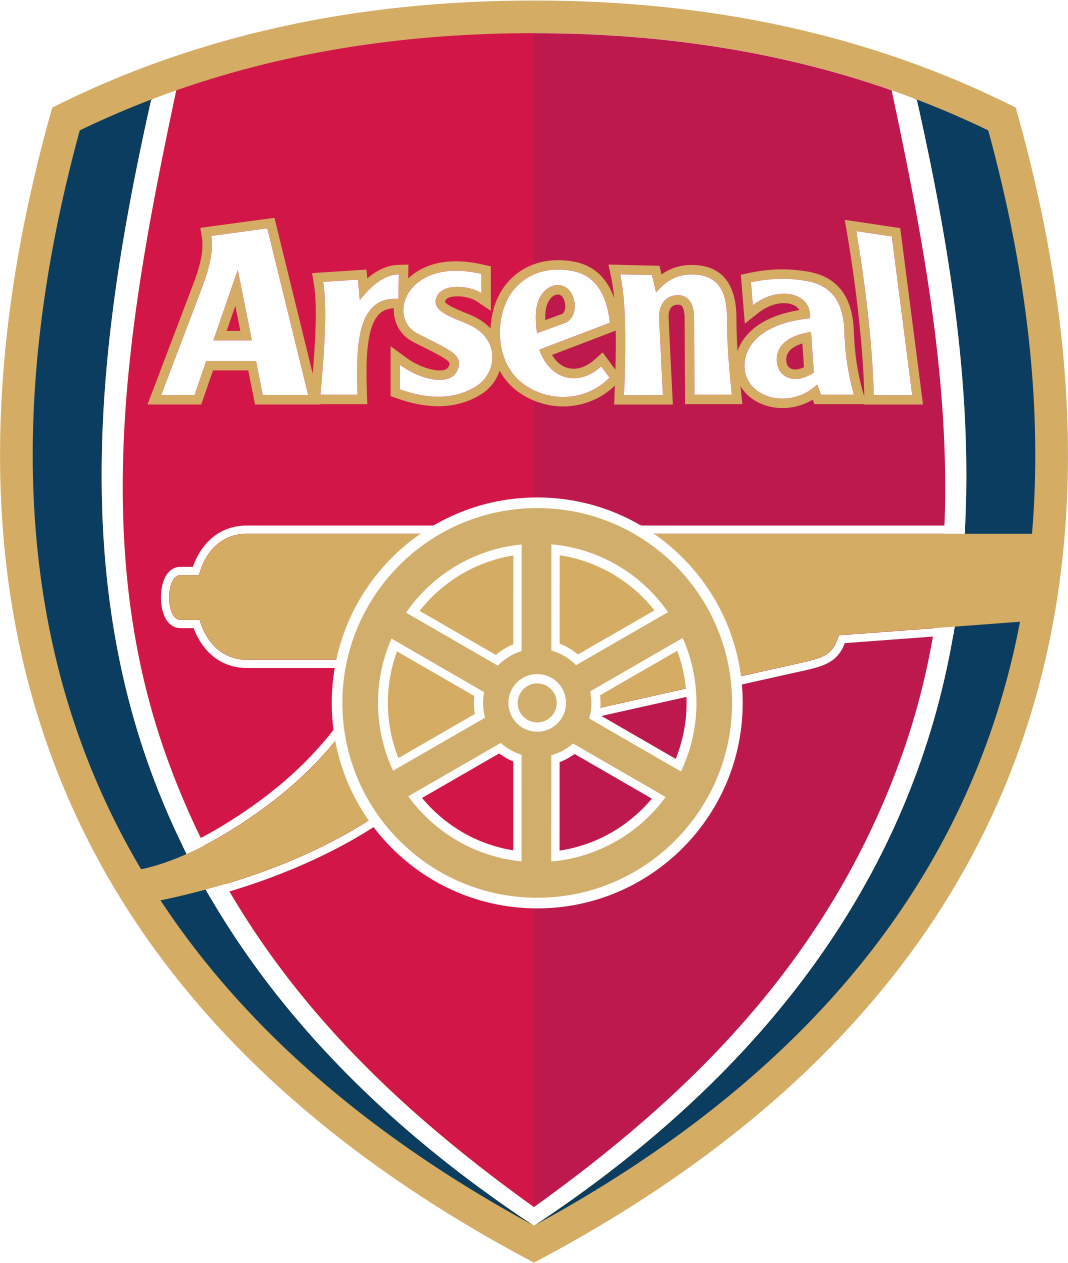 Préférence Arsenal Foot Ball Club Logo Vector (Ai, Png File) - Welogo Vector  MG55